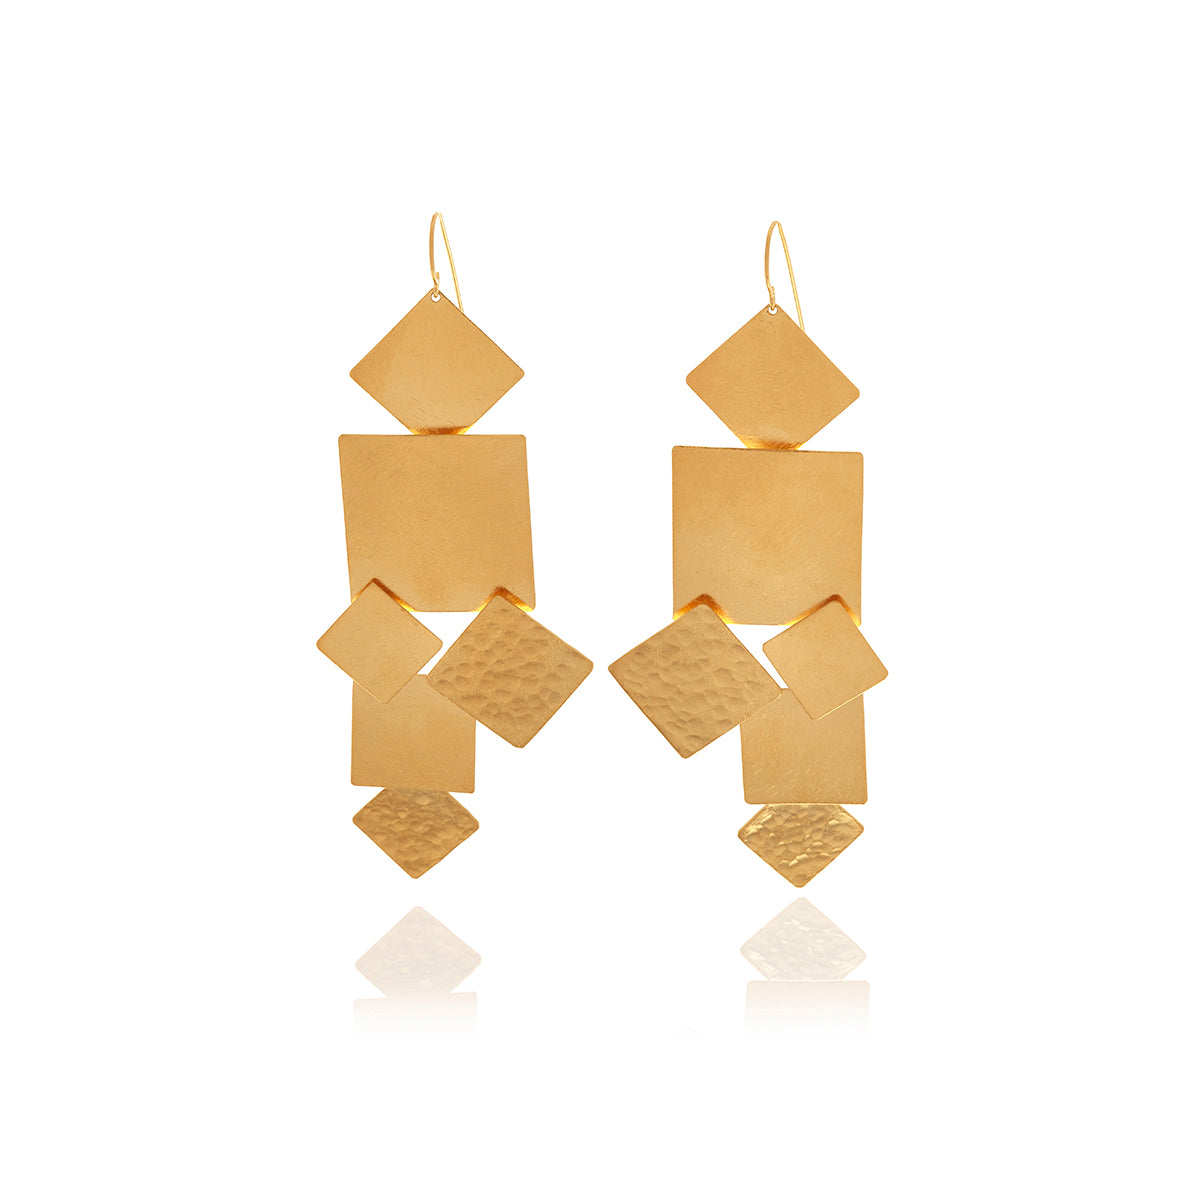 olizz filled gold earrings triangle geometric